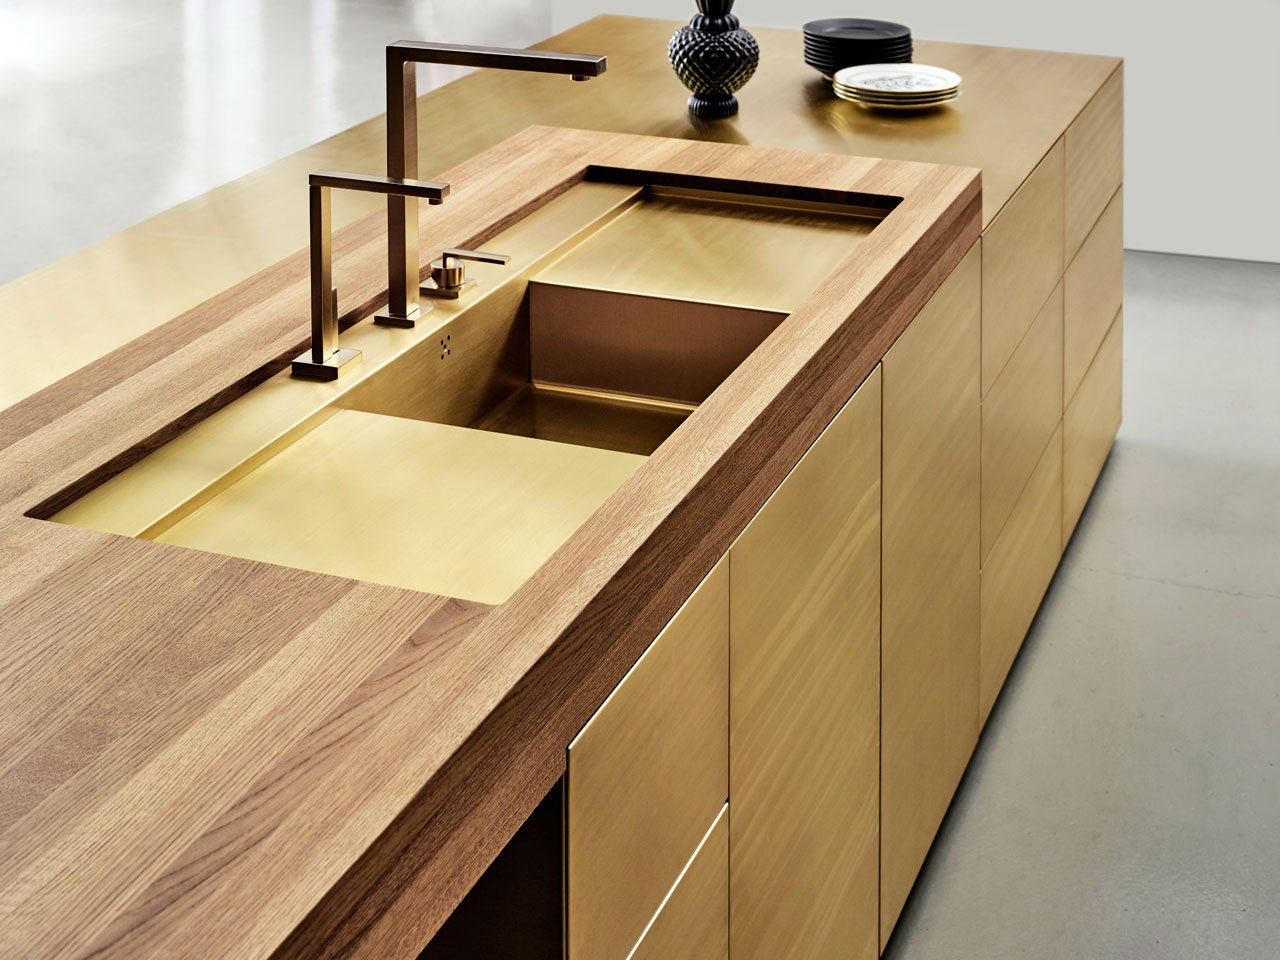 The new Form 45 kitchenin brass, the evolution of Form 1 which was designed in 1982 by Carsten Michelsen founder of Multiform.